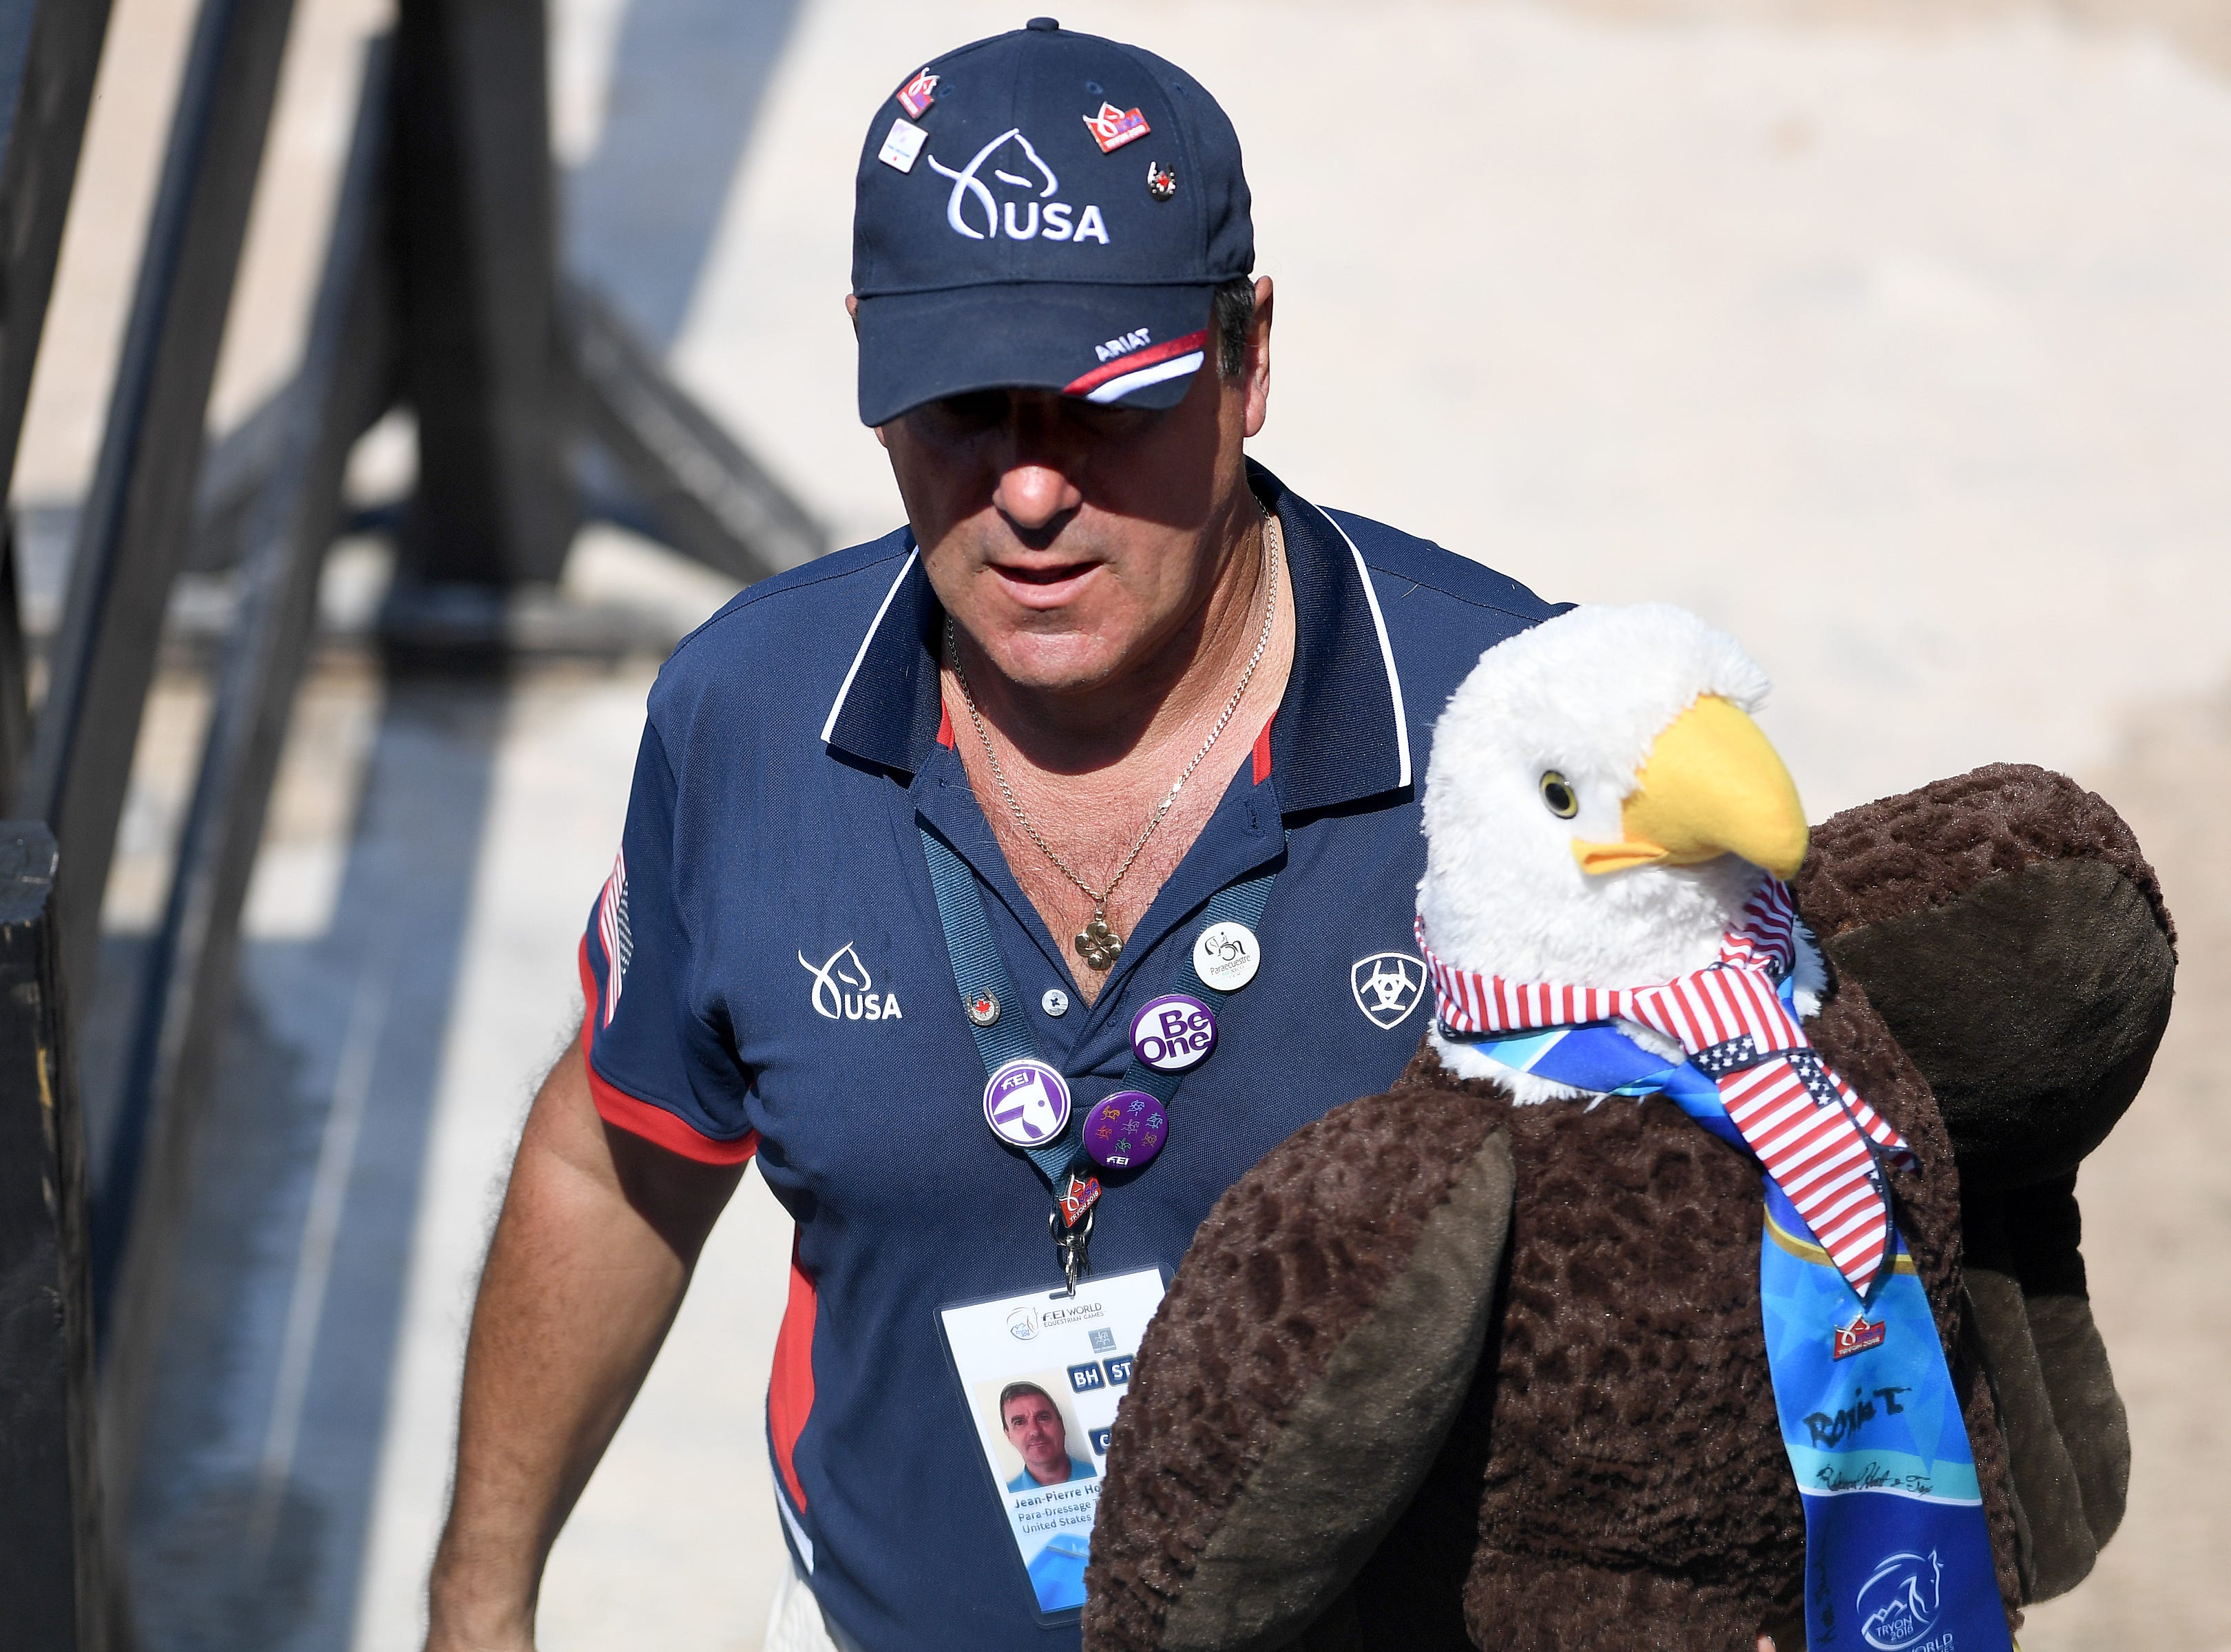 An American carries a stuffed bald eagle during the Para-dressage competition of the FEI World Equestrian Games at the Tryon International Equestrian Center on Sept. 20, 2018.